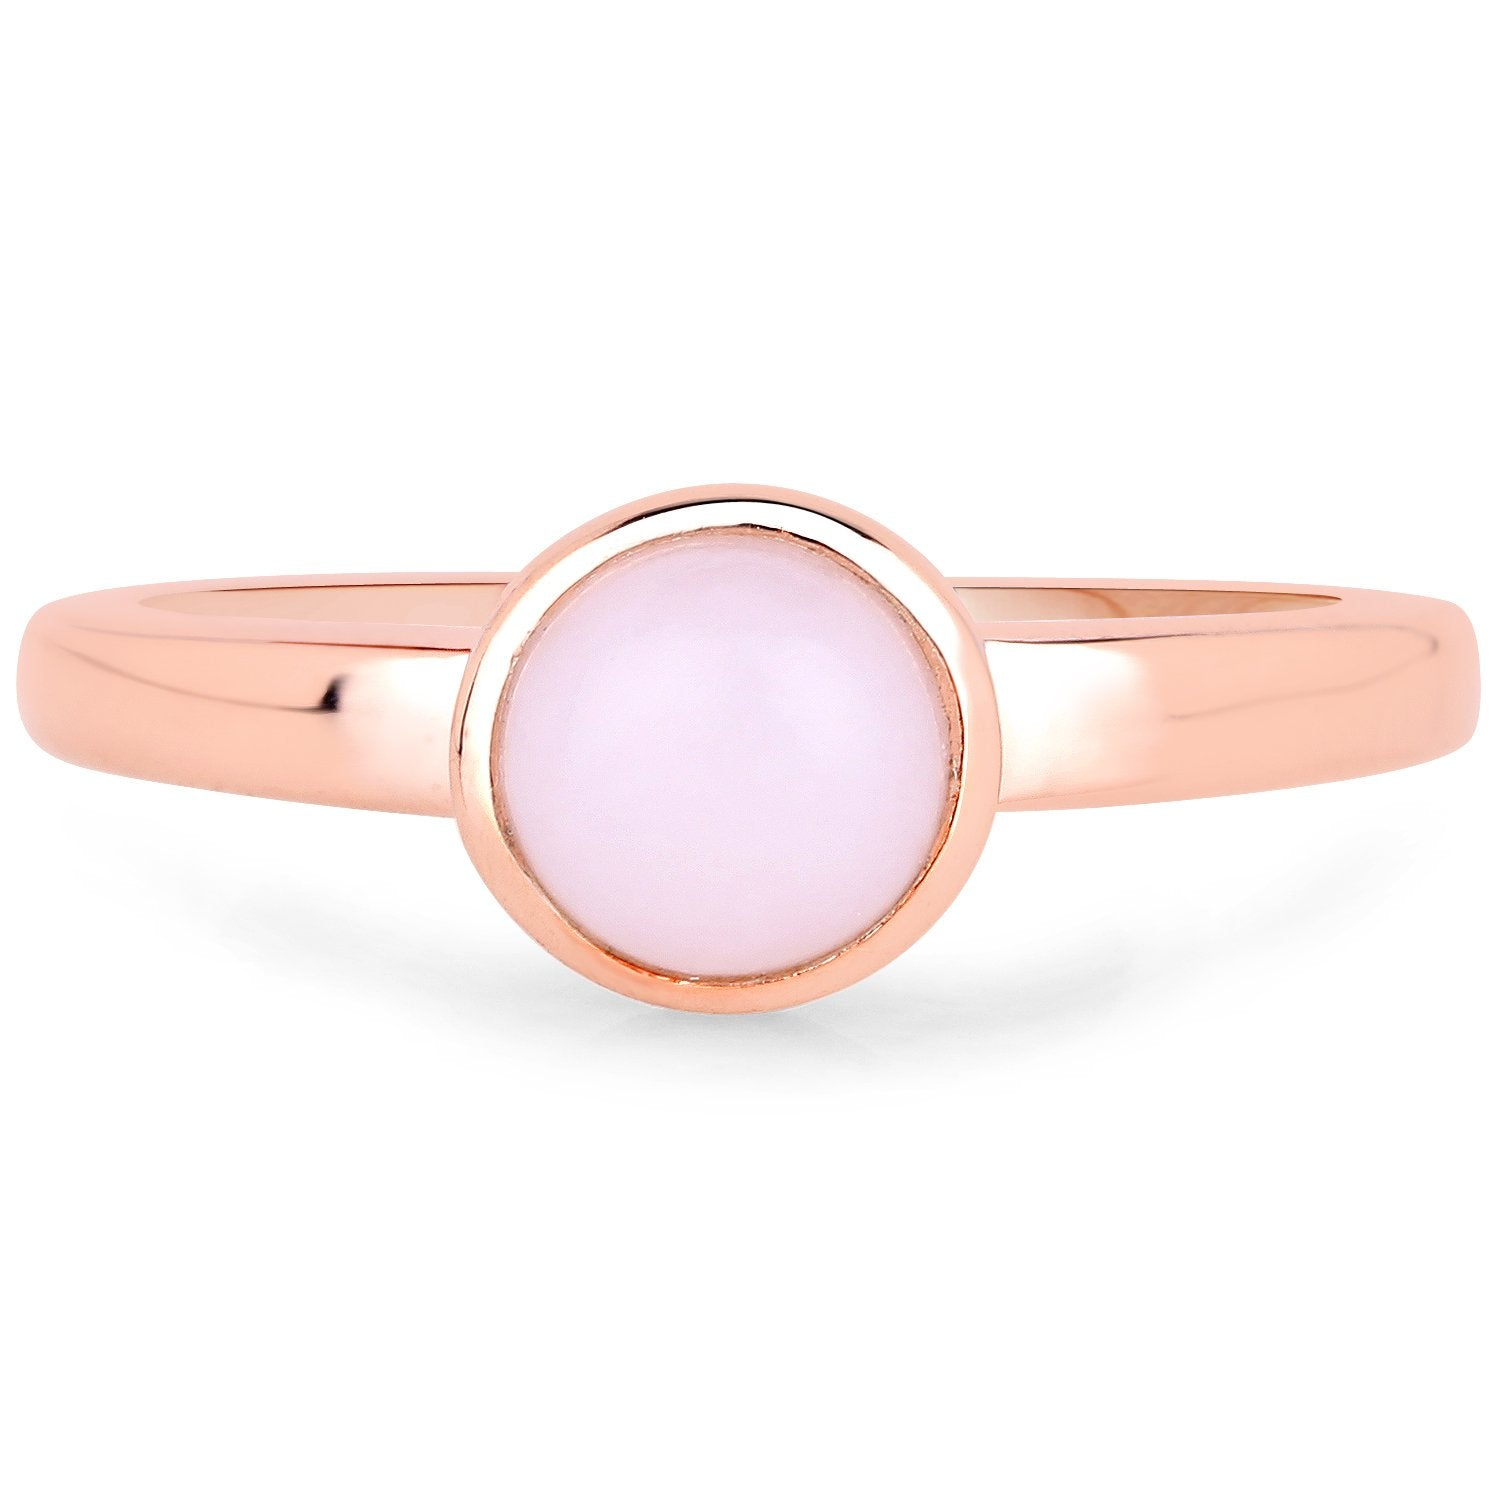 LoveHuang 0.79 Carats Genuine Pink Opal Bezel Ring Solid .925 Sterling Silver With 18KT Rose Gold Plating